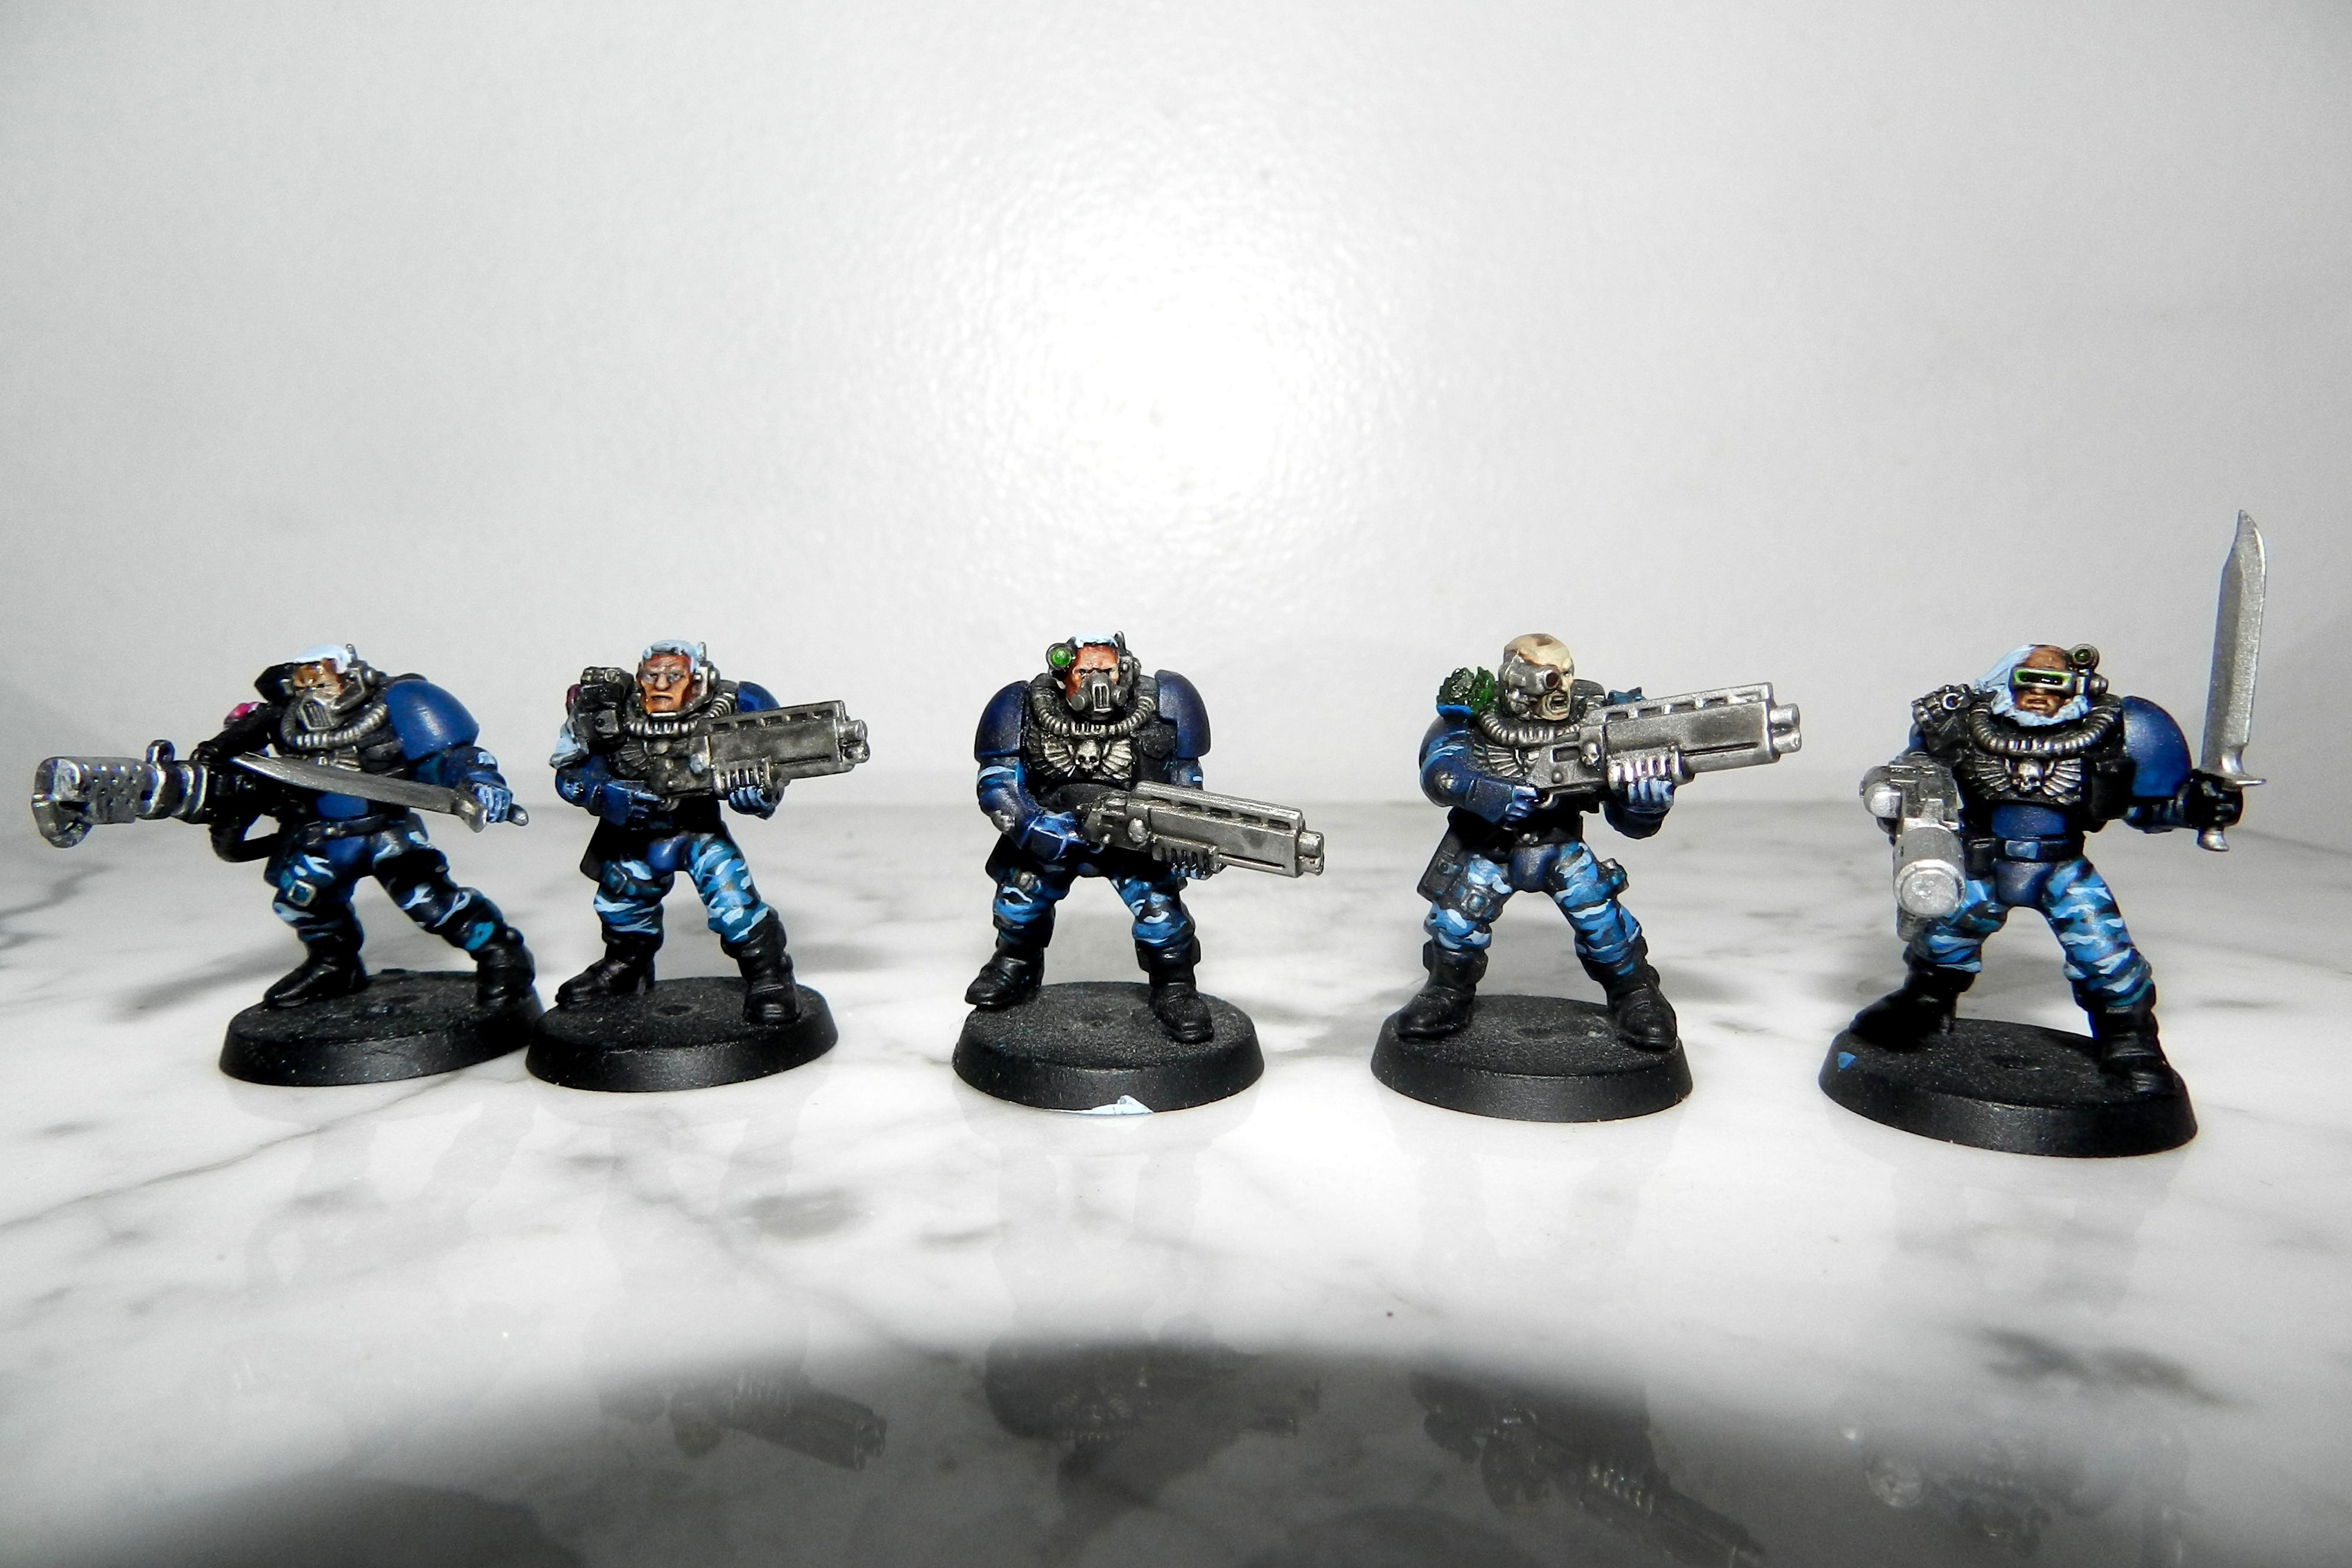 Adeptus Arbites, Cadians, Camouflage, Carapace, Carapace Armour, Commissar, Conversion, Fenris, Flamer, Gears Of War, Grenadiers, Guardsmen, Imperial Guard, Meltagun, Scouts, Seargent, Shotgun, Space Wolves, Urban, Veteran, Warhammer 40,000, Wolf Scout, Work In Progress